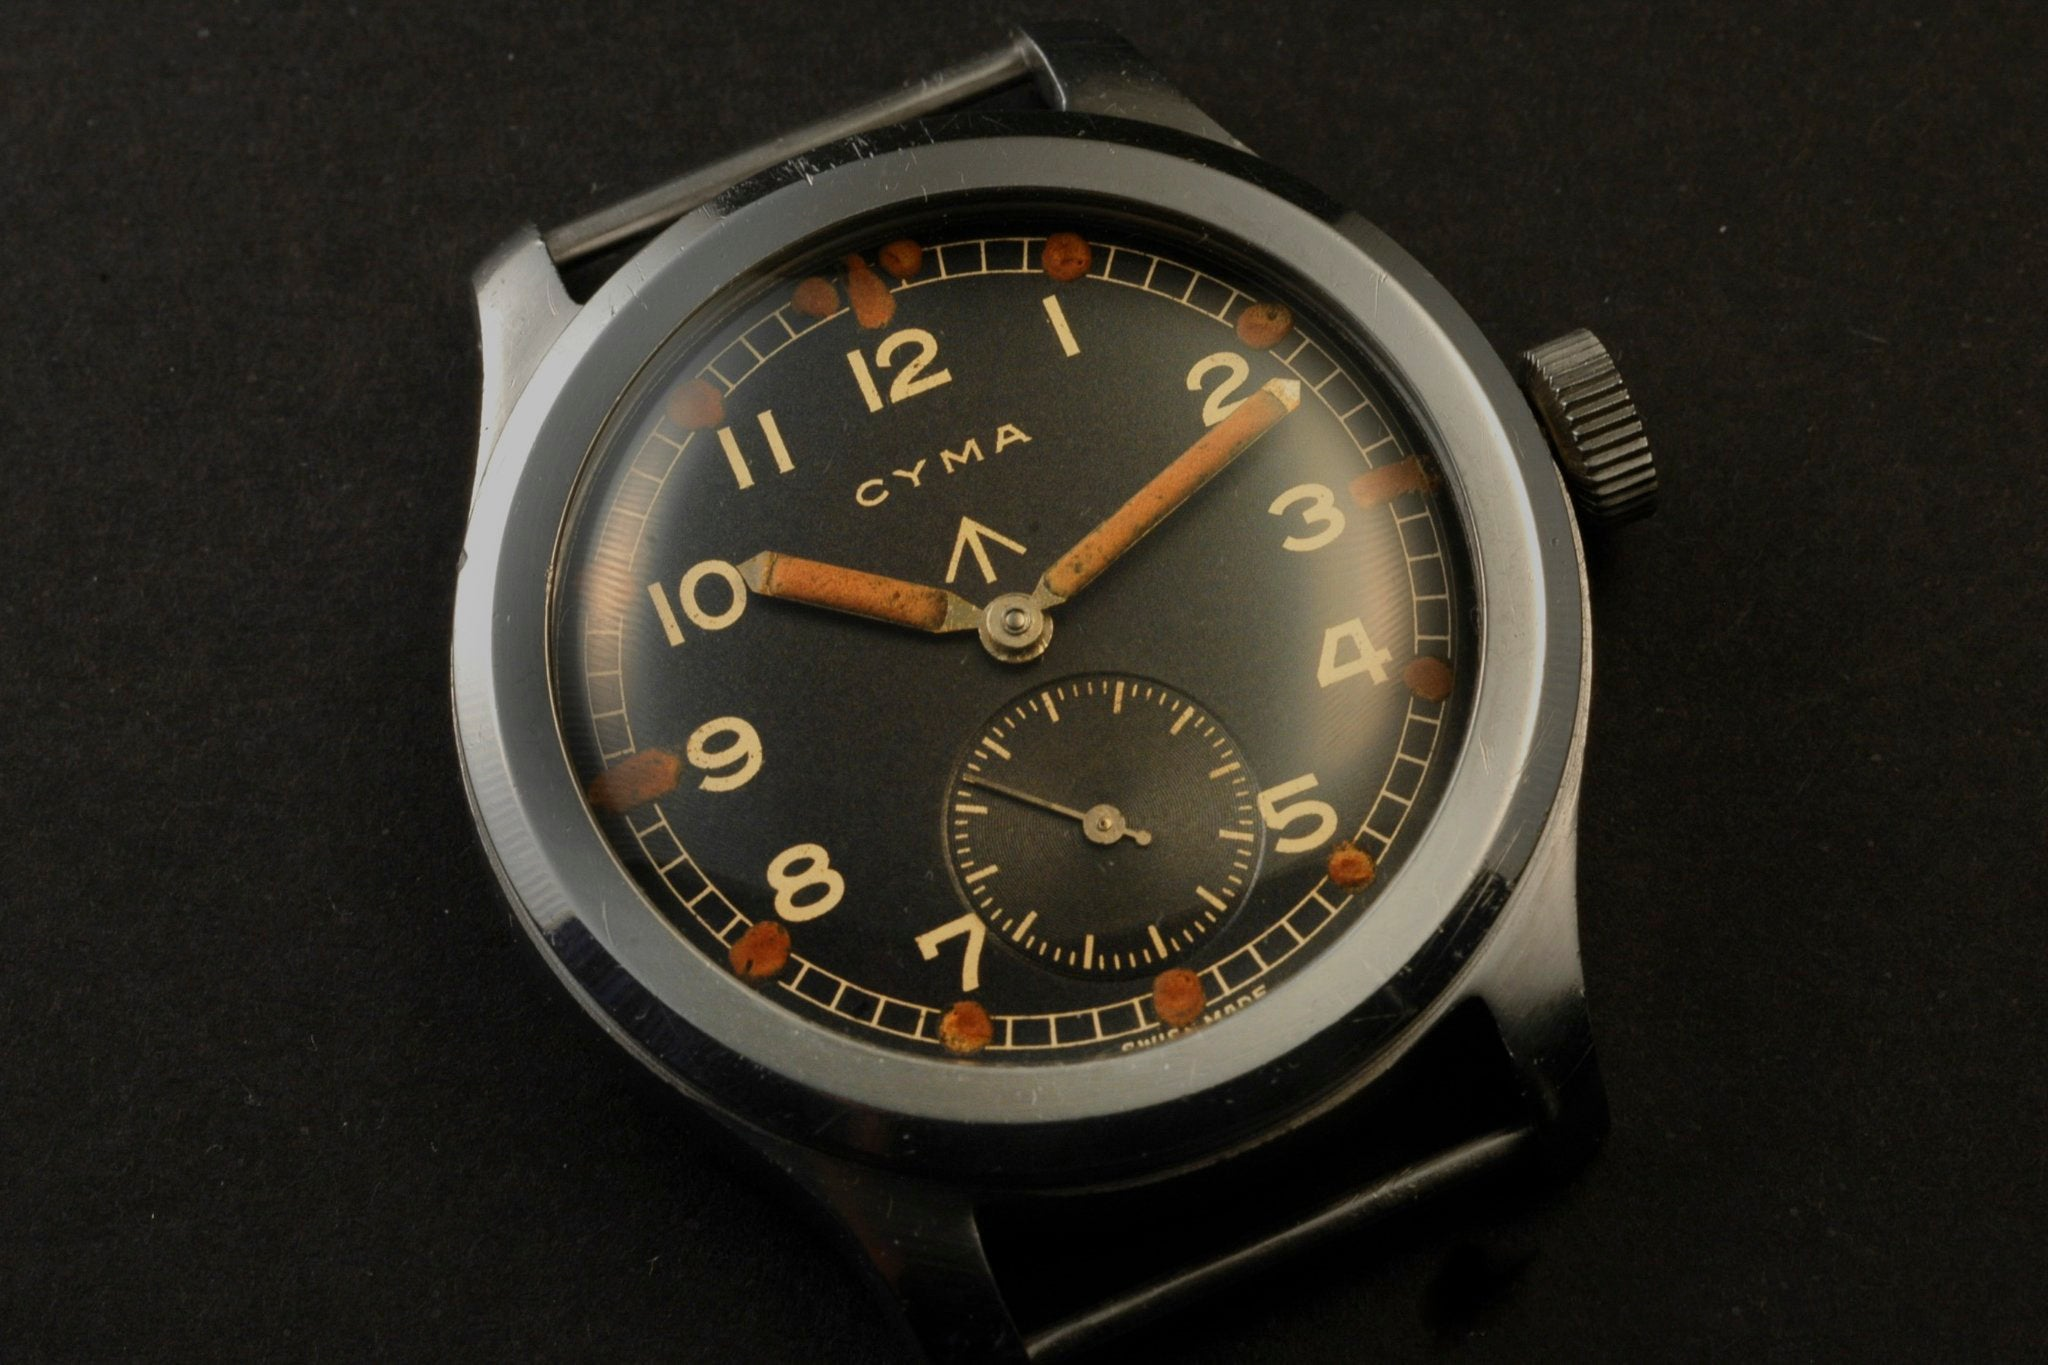 W.W.W. British Dirty Dozen Cyma military watch at A Collected Man London vintage military watch specialist